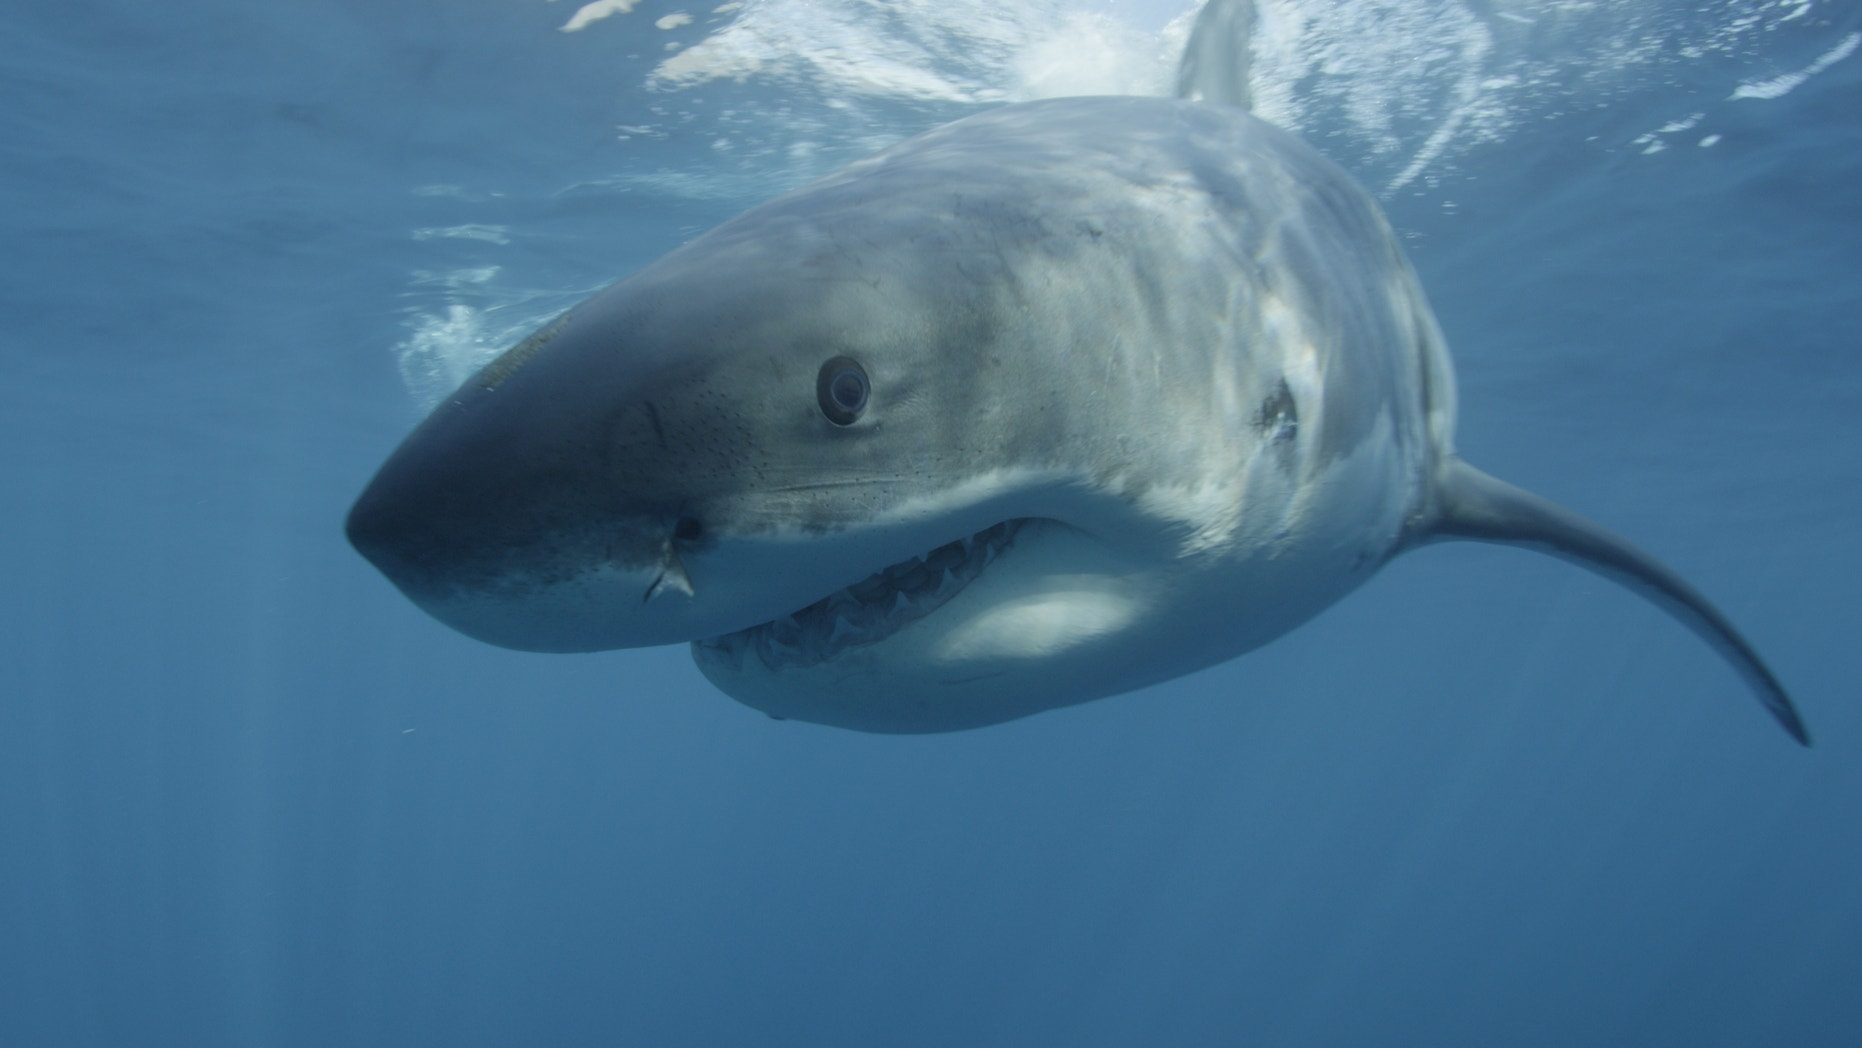 A large Great white shark cruises past the underwater cameraman at Guadalupe Island off the coast of Mexico.